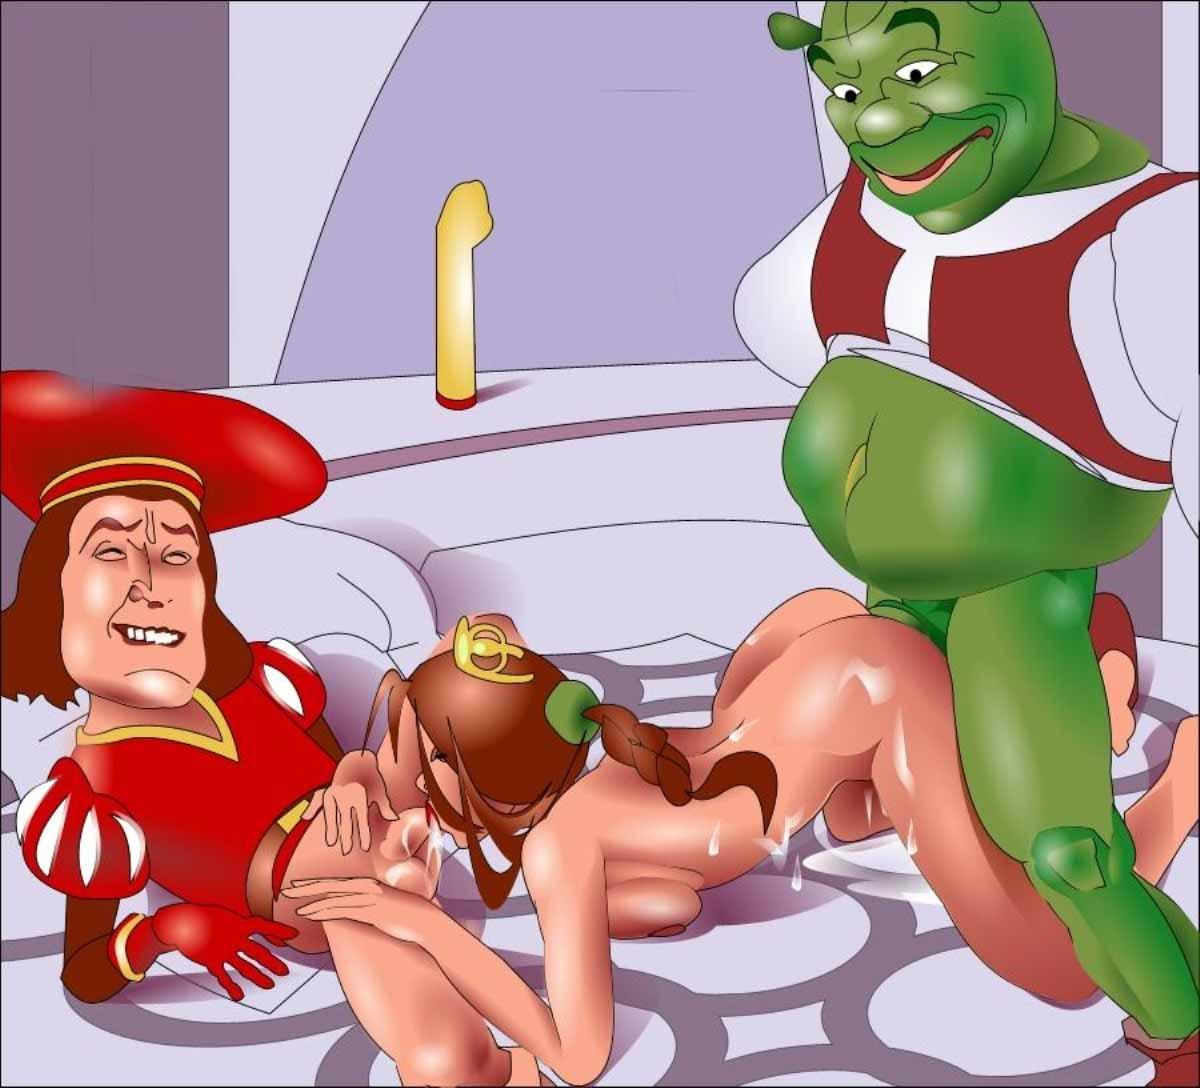 Shrek porn video nackt picture